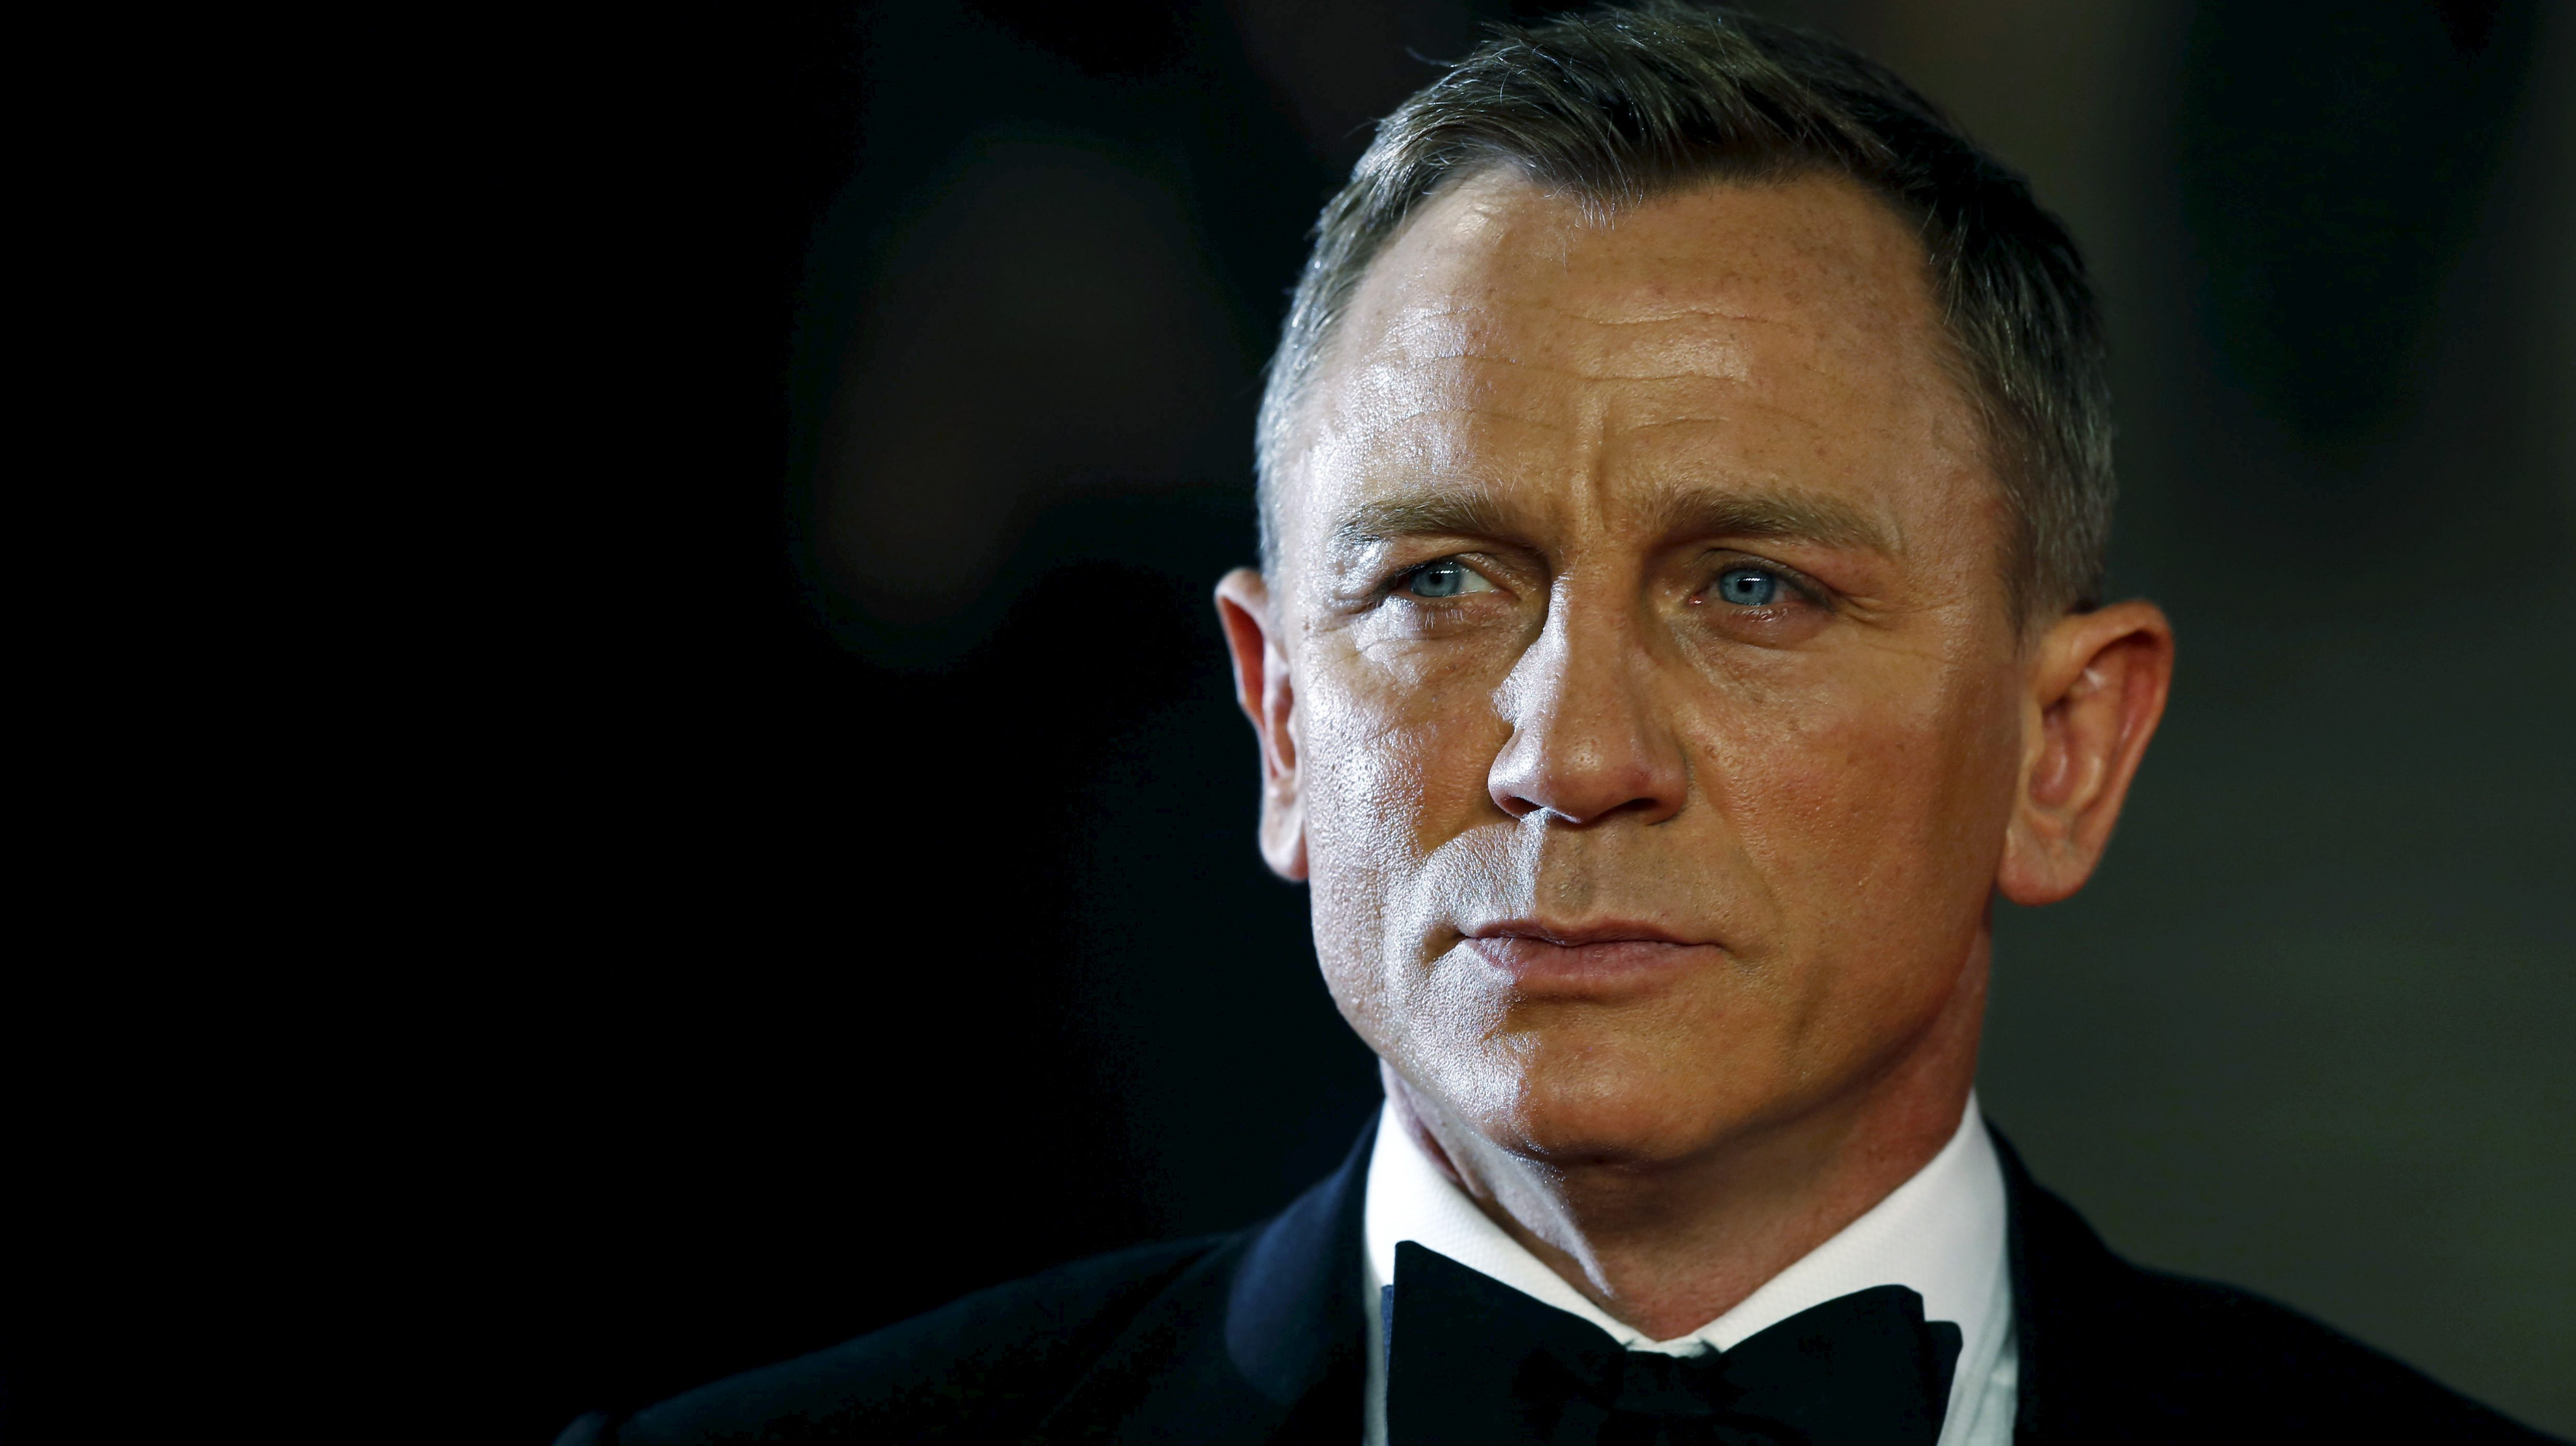 The Next James Bond Movie Could Be About A Different